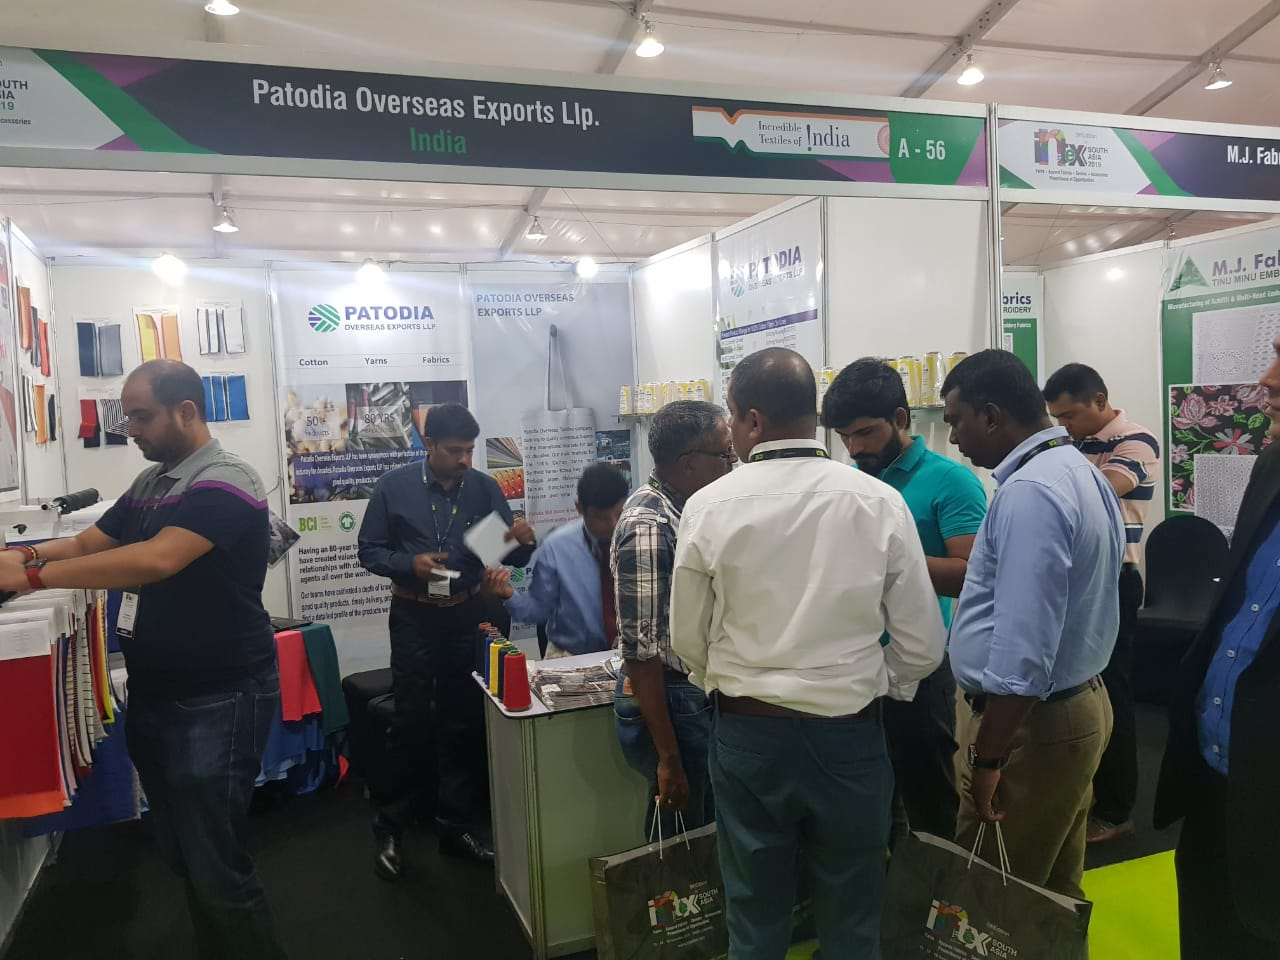 India Pavilion setup by TEXPROCIL @ Intex South Asia held between 13-15 November 2019, Colombo, Sri Lanka